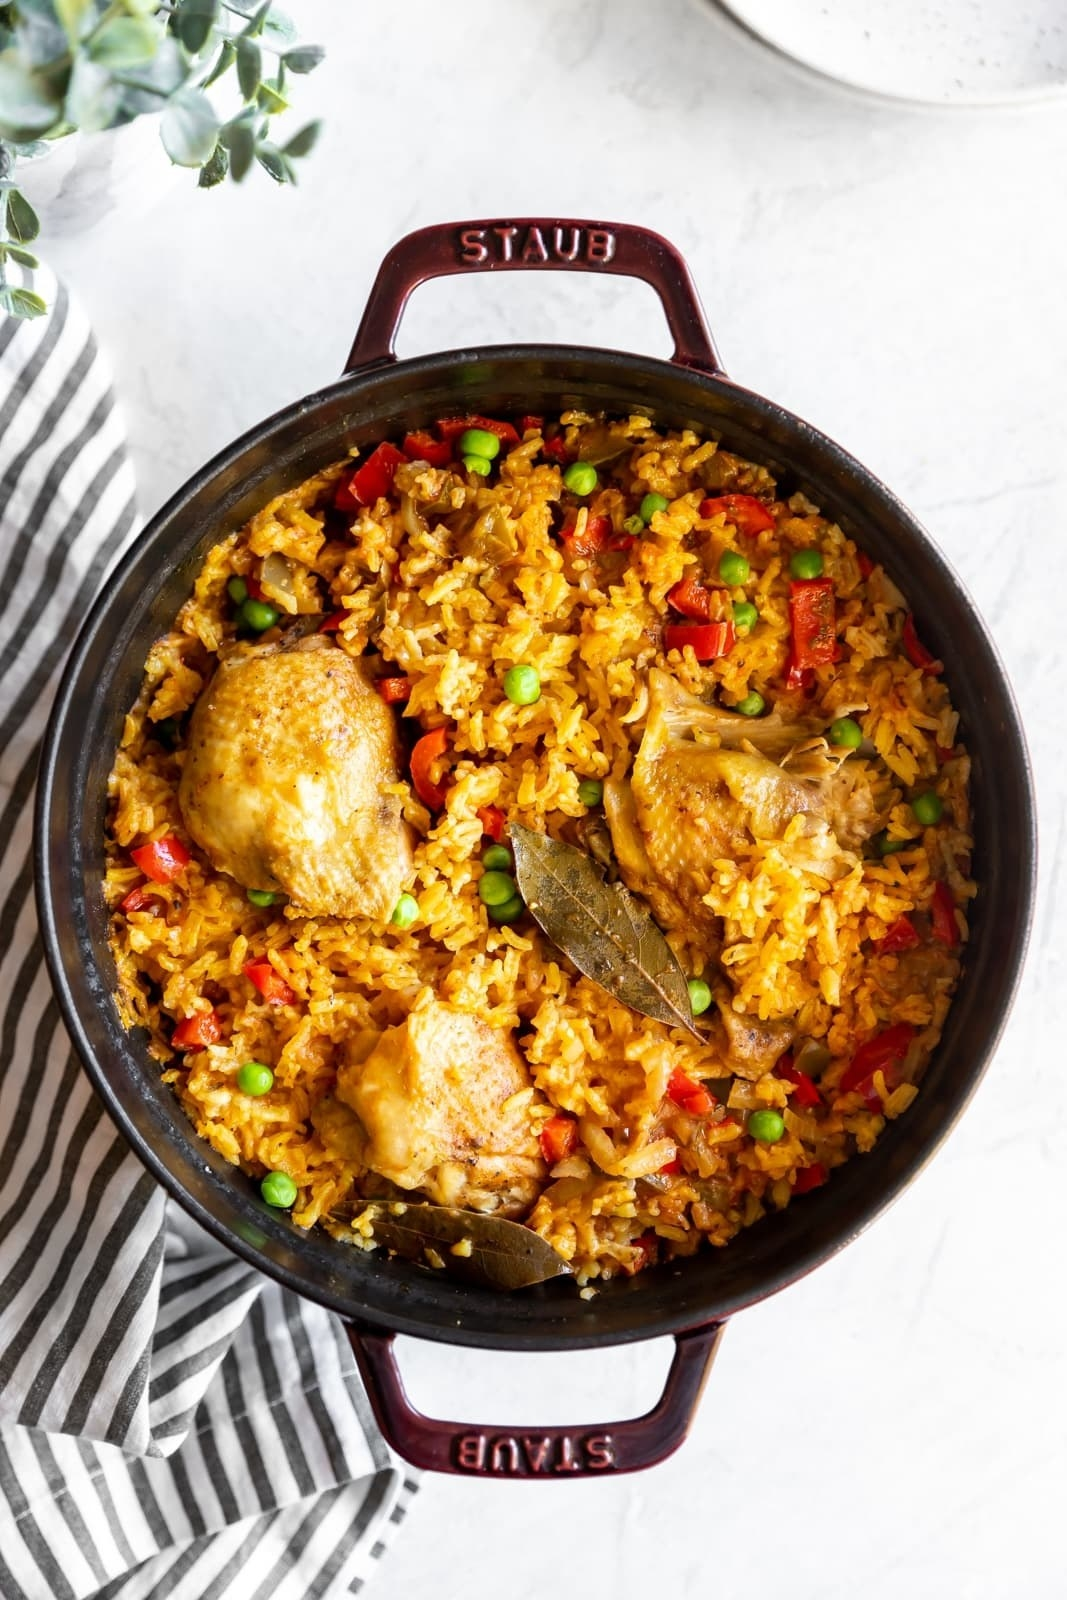 A pan of arroz con pollo